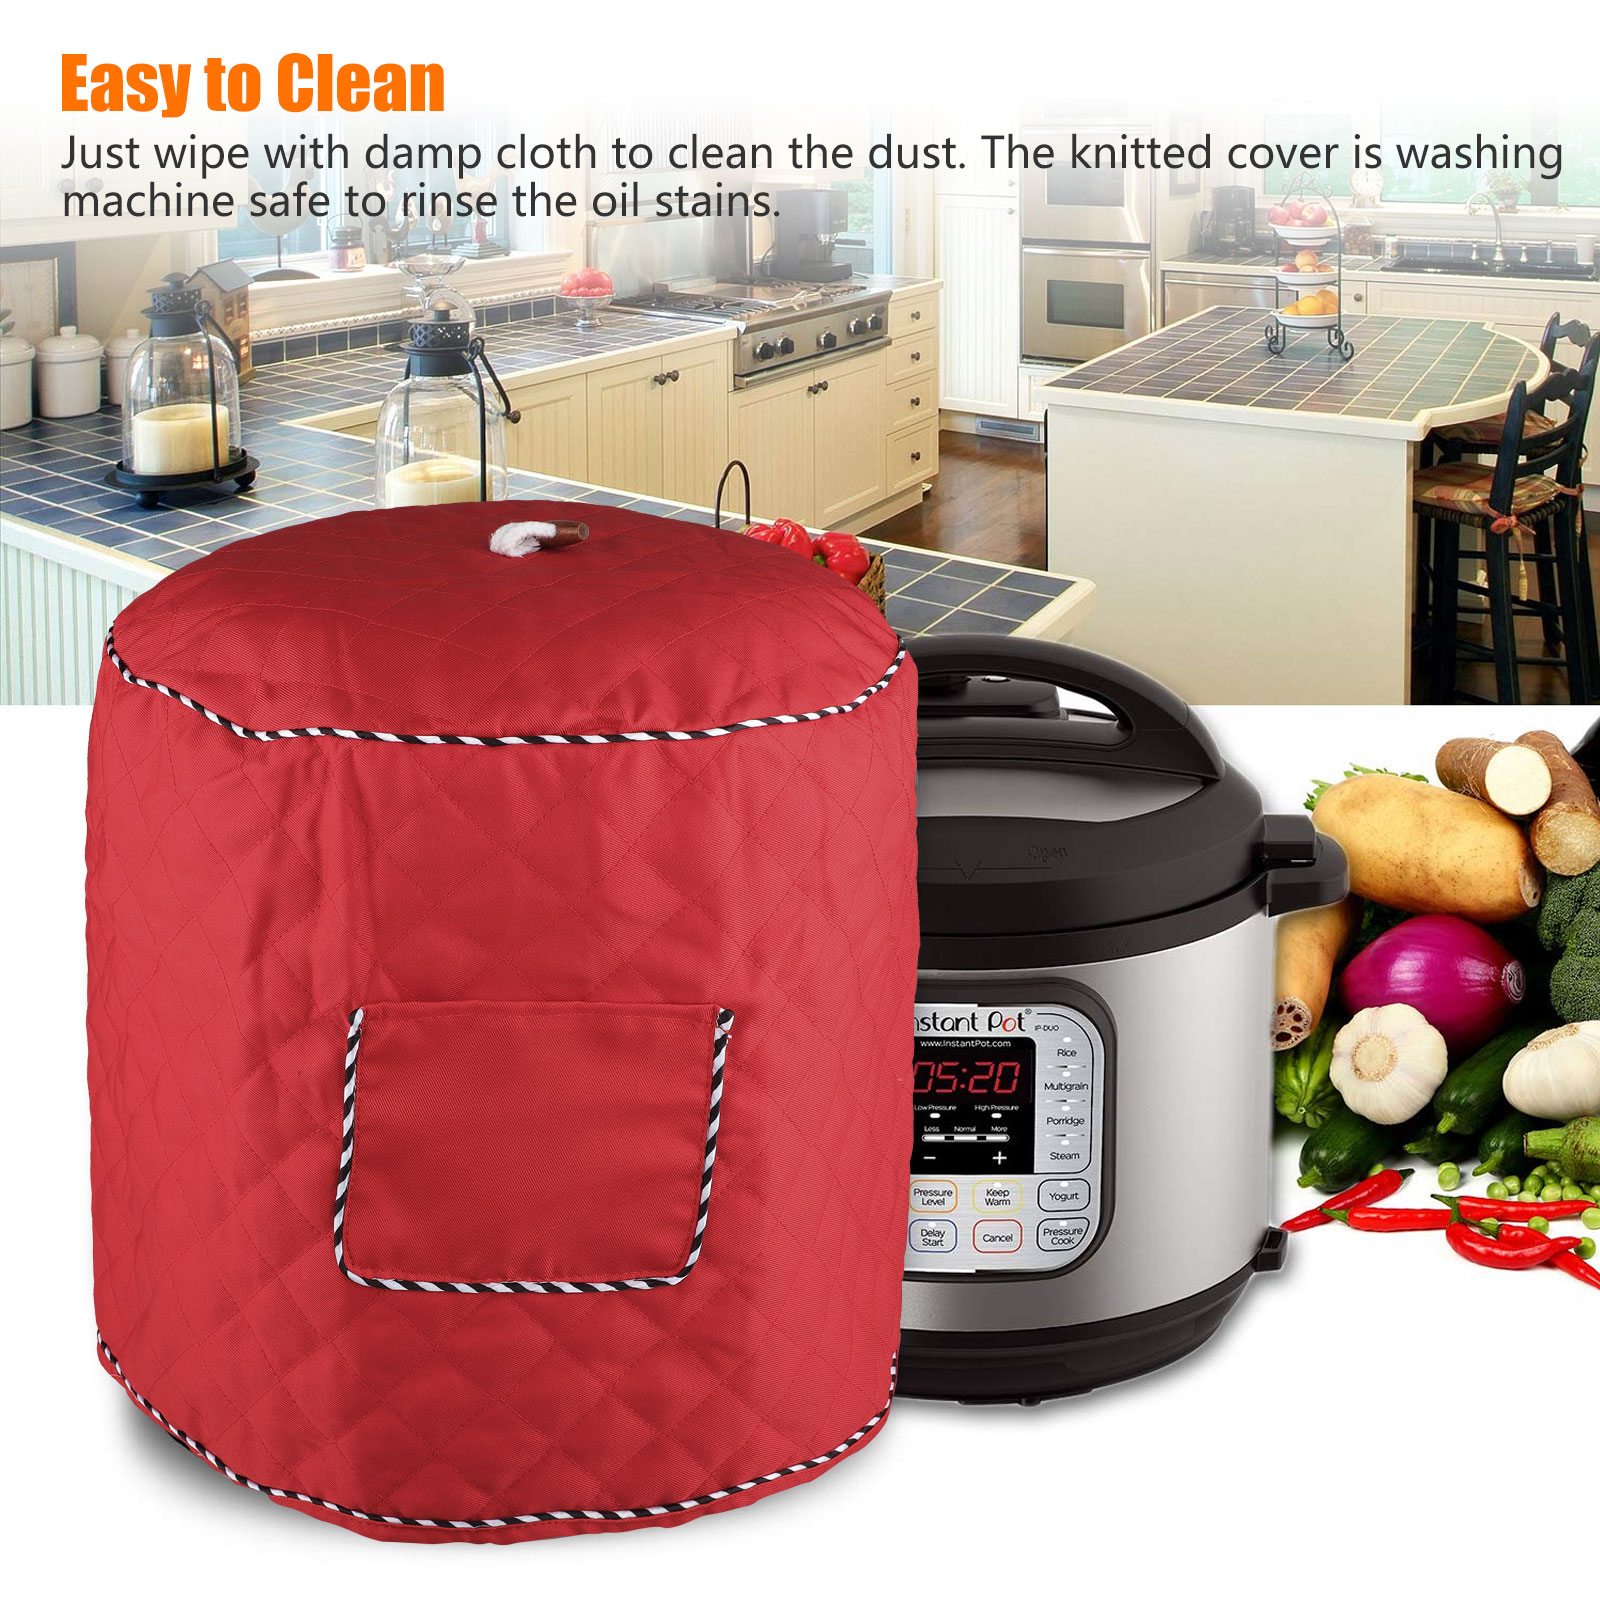 Anti Static Dust Cover with Interior Lining /& Side Pocket Decorative Cover for Electric Pressure Cookers Has Pocket 6Qt,Red